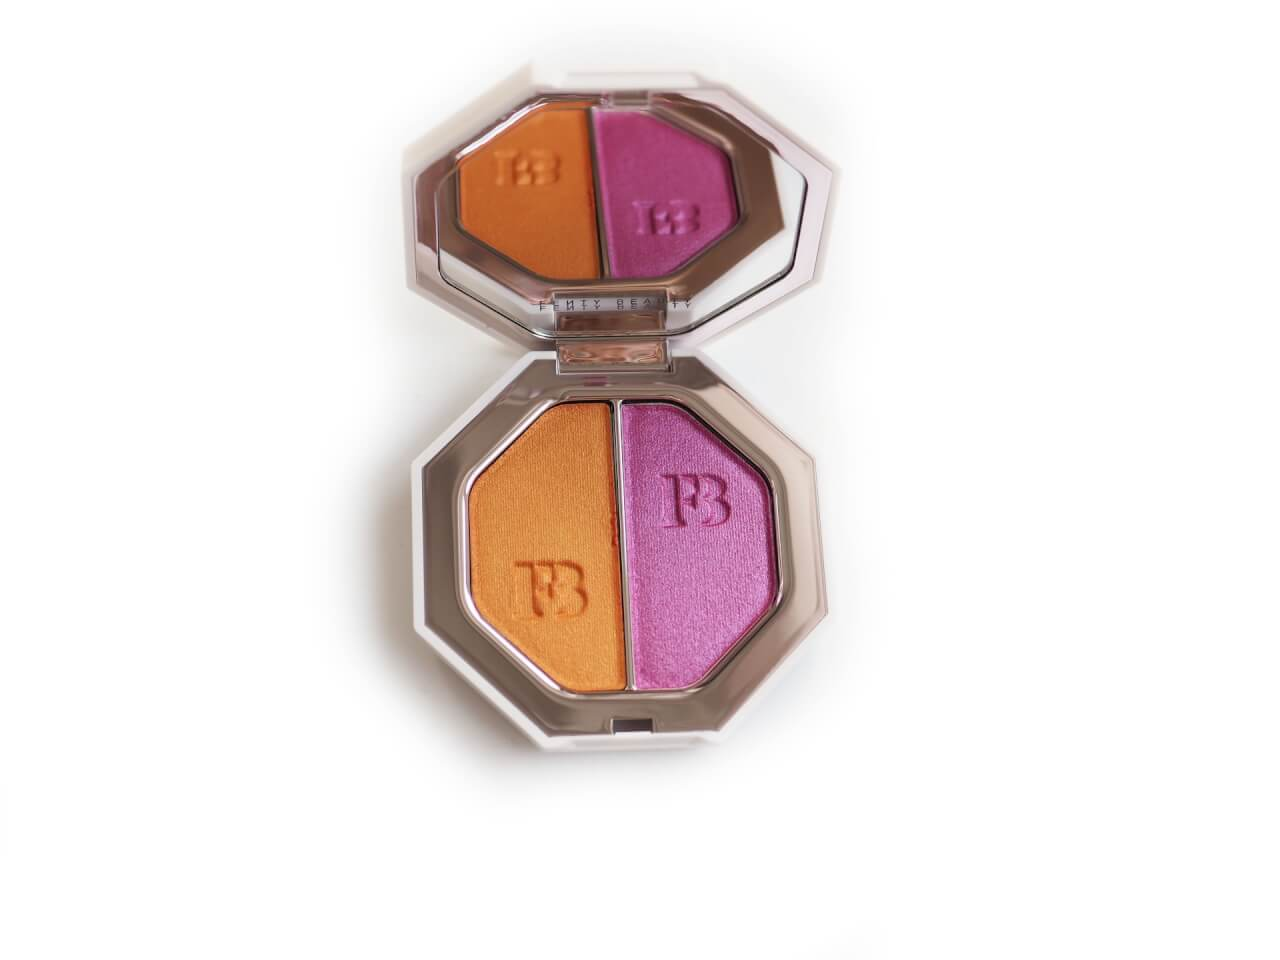 Fenty Beauty Mimosa Sunrise / Sangria Sunset Killawatt Foil Freestyle Highlighter